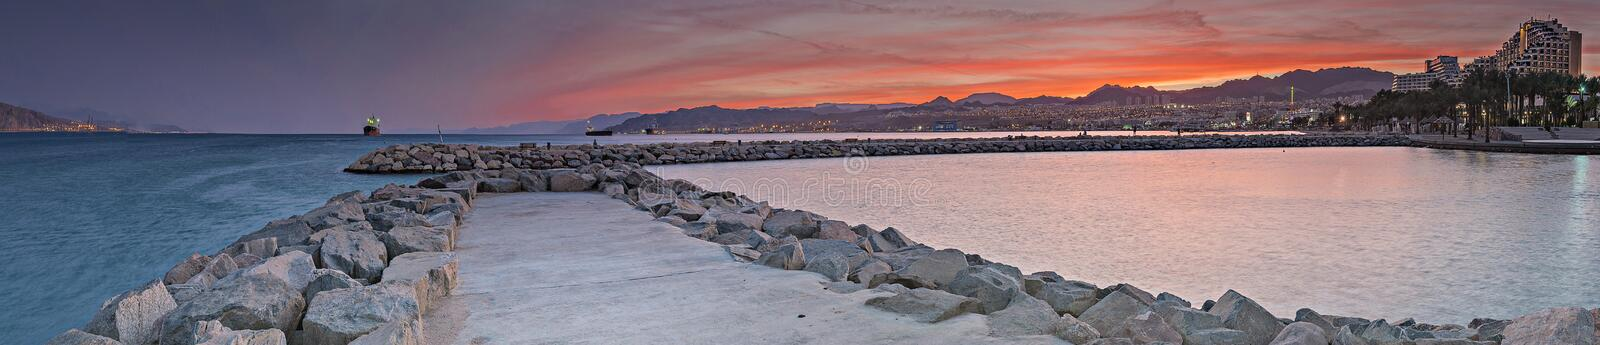 Evening view on Eilat and the Red sea, Israel stock photography